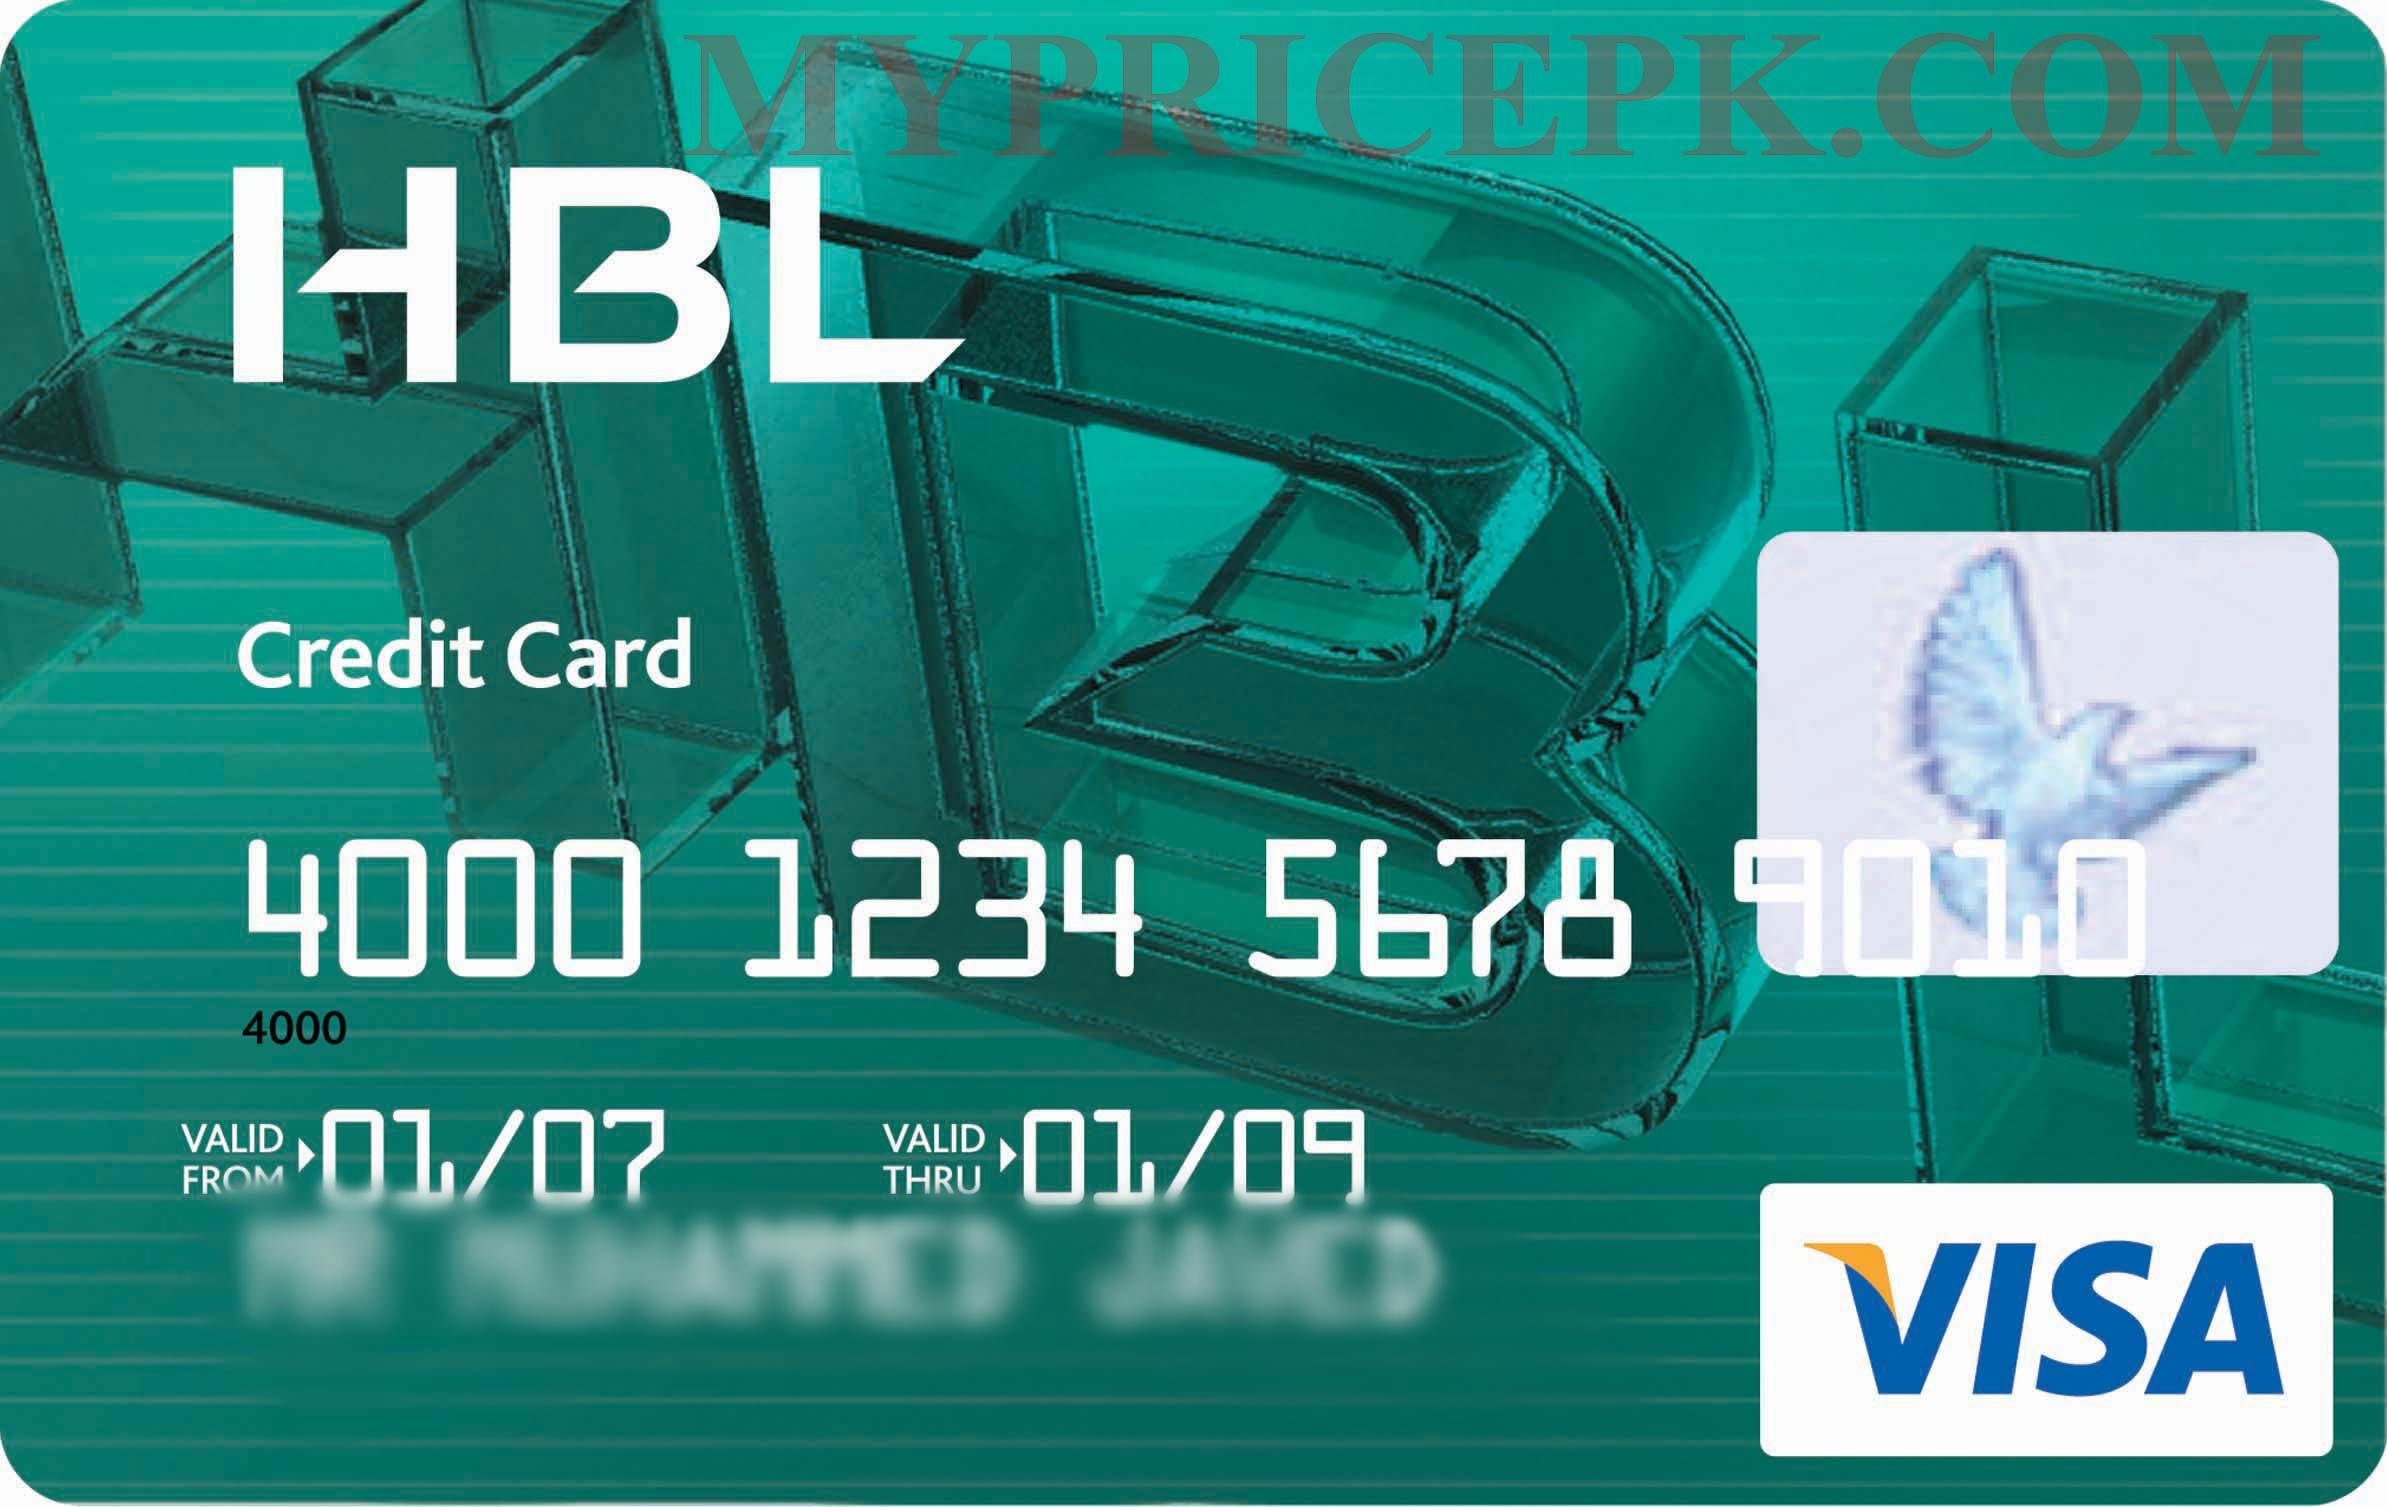 How To Get A Credit Card In Pakistan Visa Card By Hbl. Top Cold And Flu Medicines Gutter Cleaning Ny. Laser Hair Removal Ogden Utah. University Of California San Francisco. Video Content Marketing Nursing Student Stress. Software Project Phases Eclipse Solar Y Lunar. Fixed Income Investment Banking. Careers In Psychology List Free Book Keeping. Business Automation Solutions